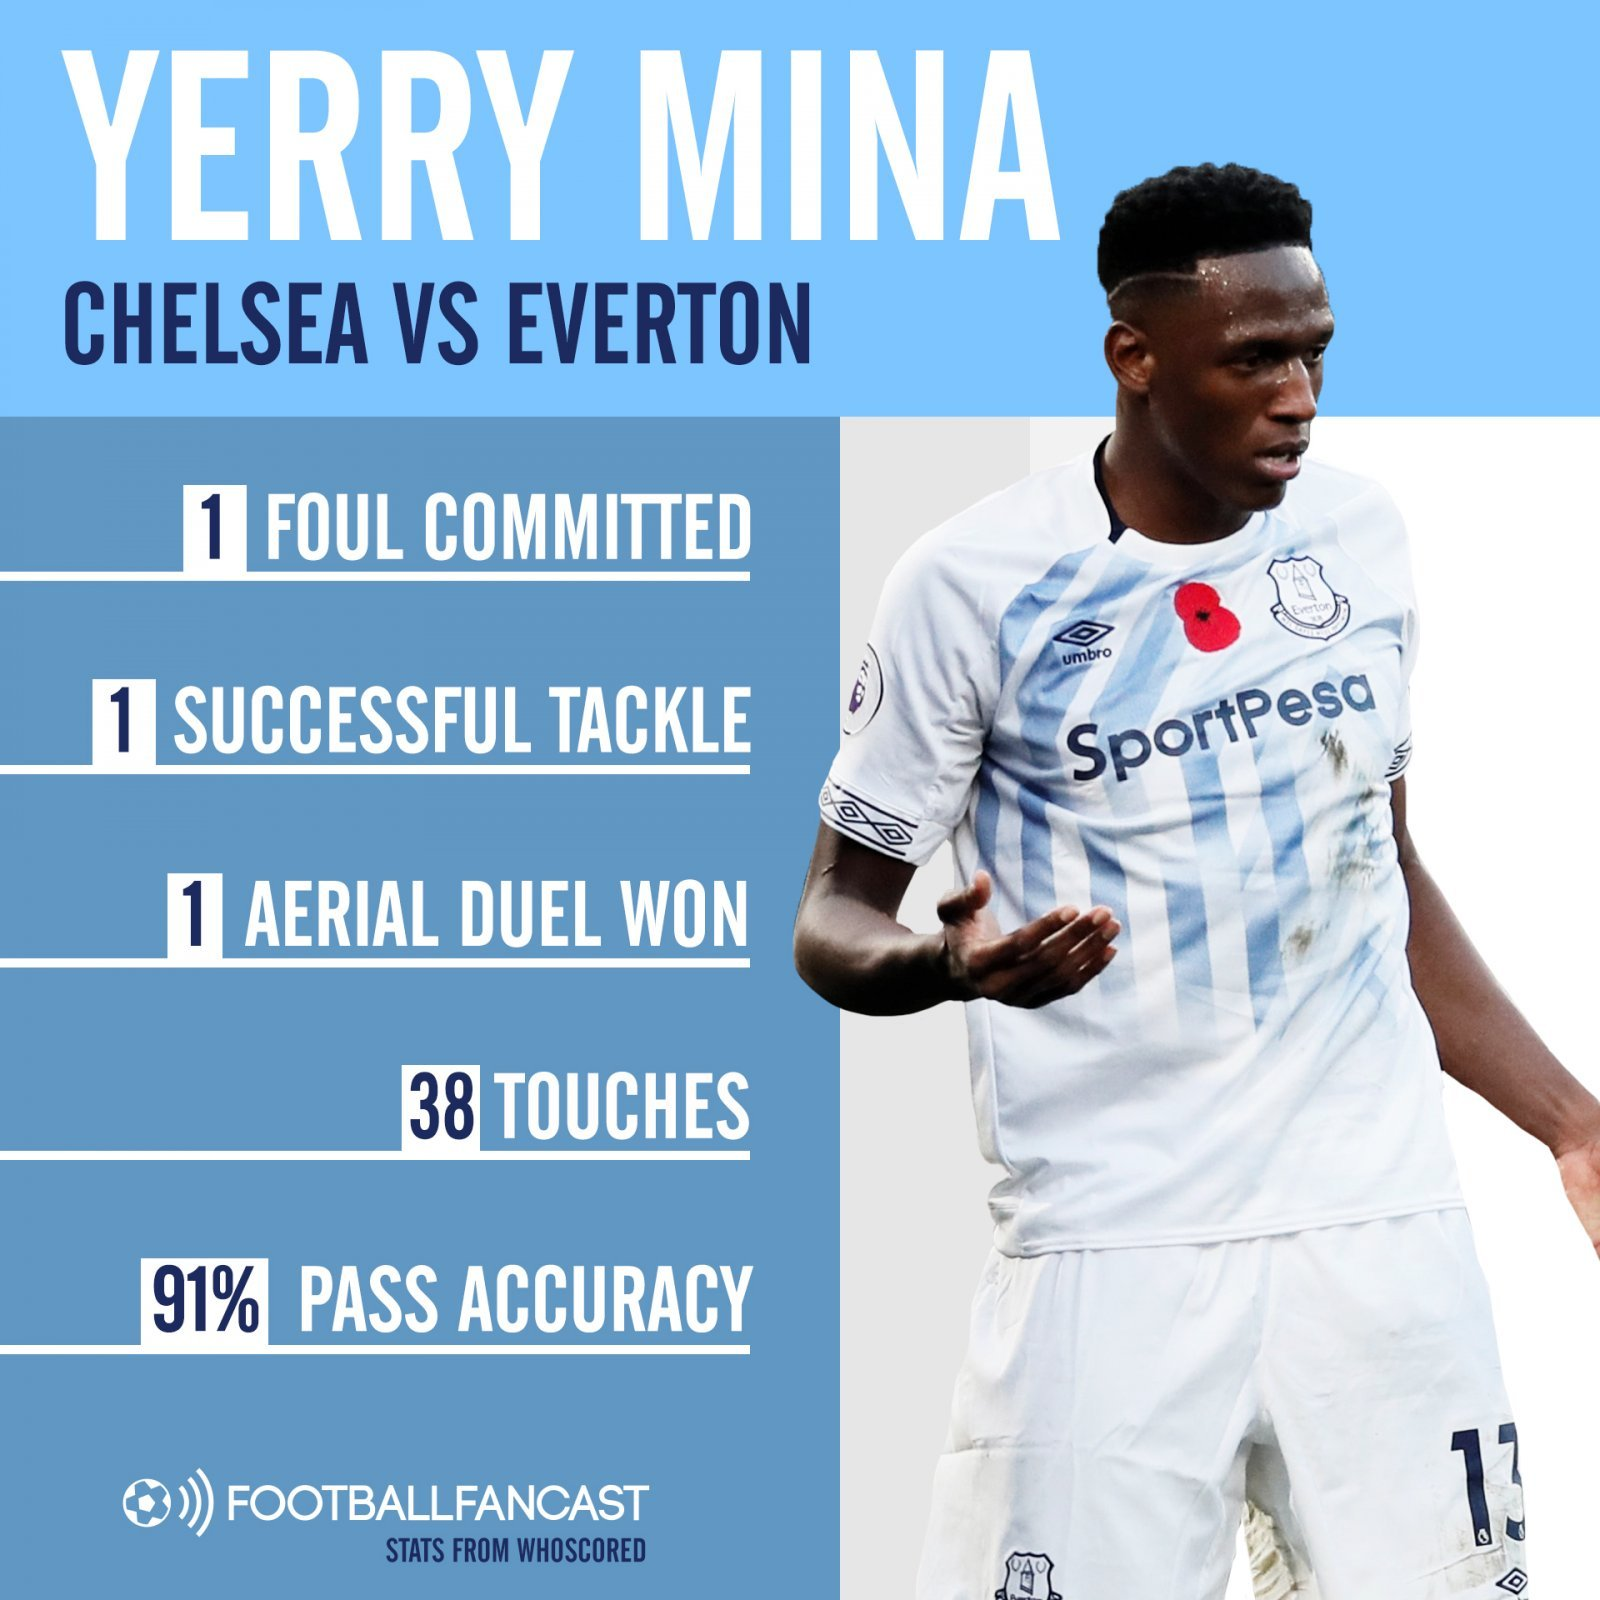 Yerry Mina's stats against Chelsea, according to WhoScored